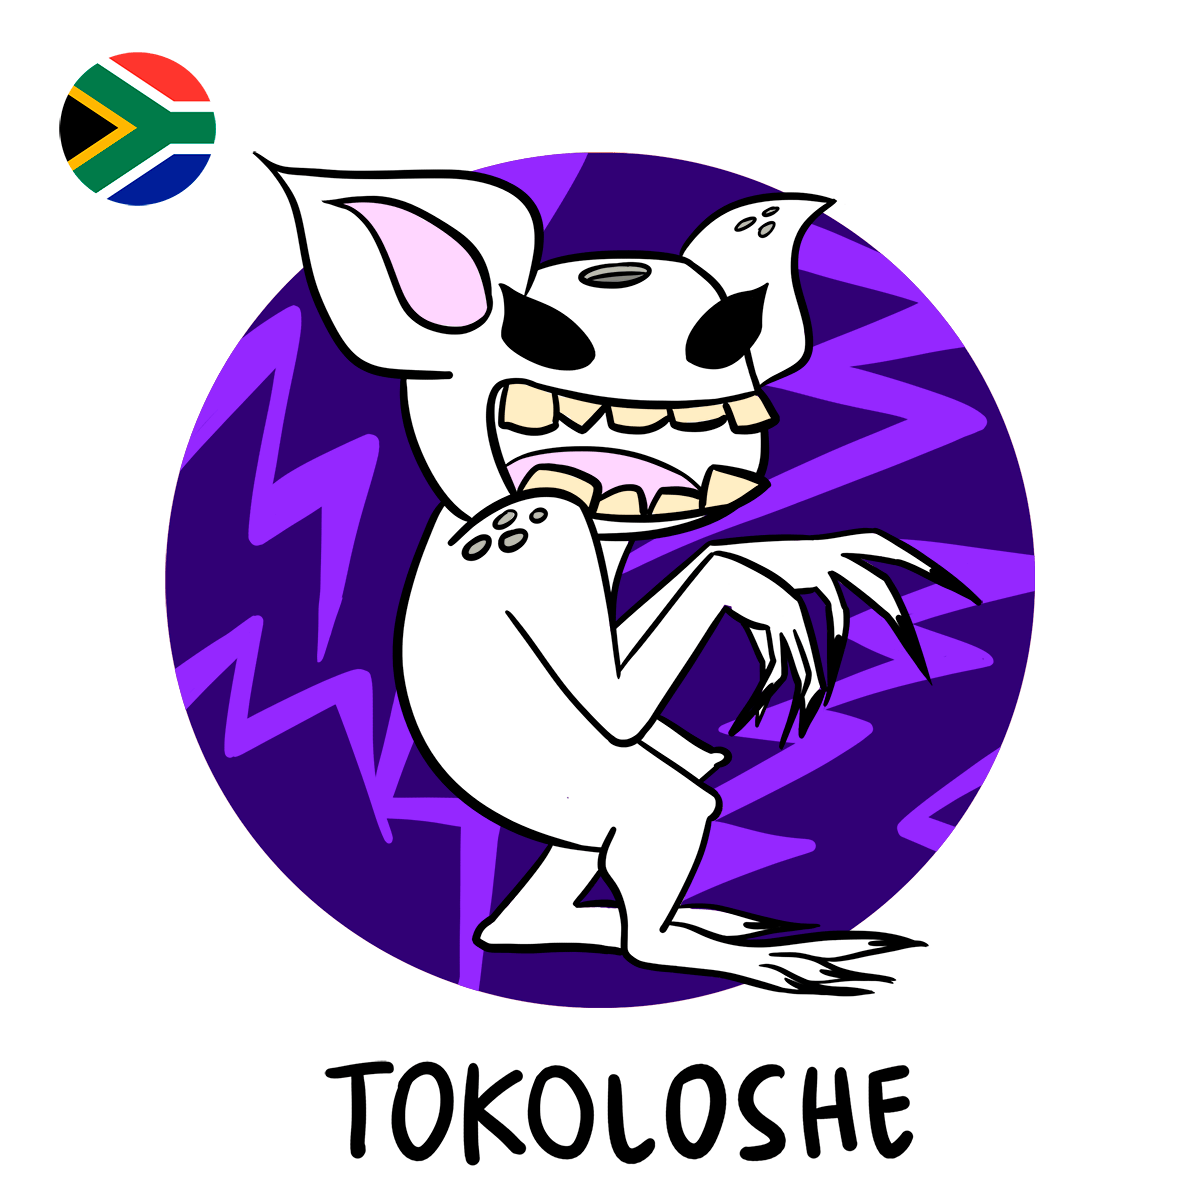 Tokoloshe illustration, small evil water spirit, South American boogeyman